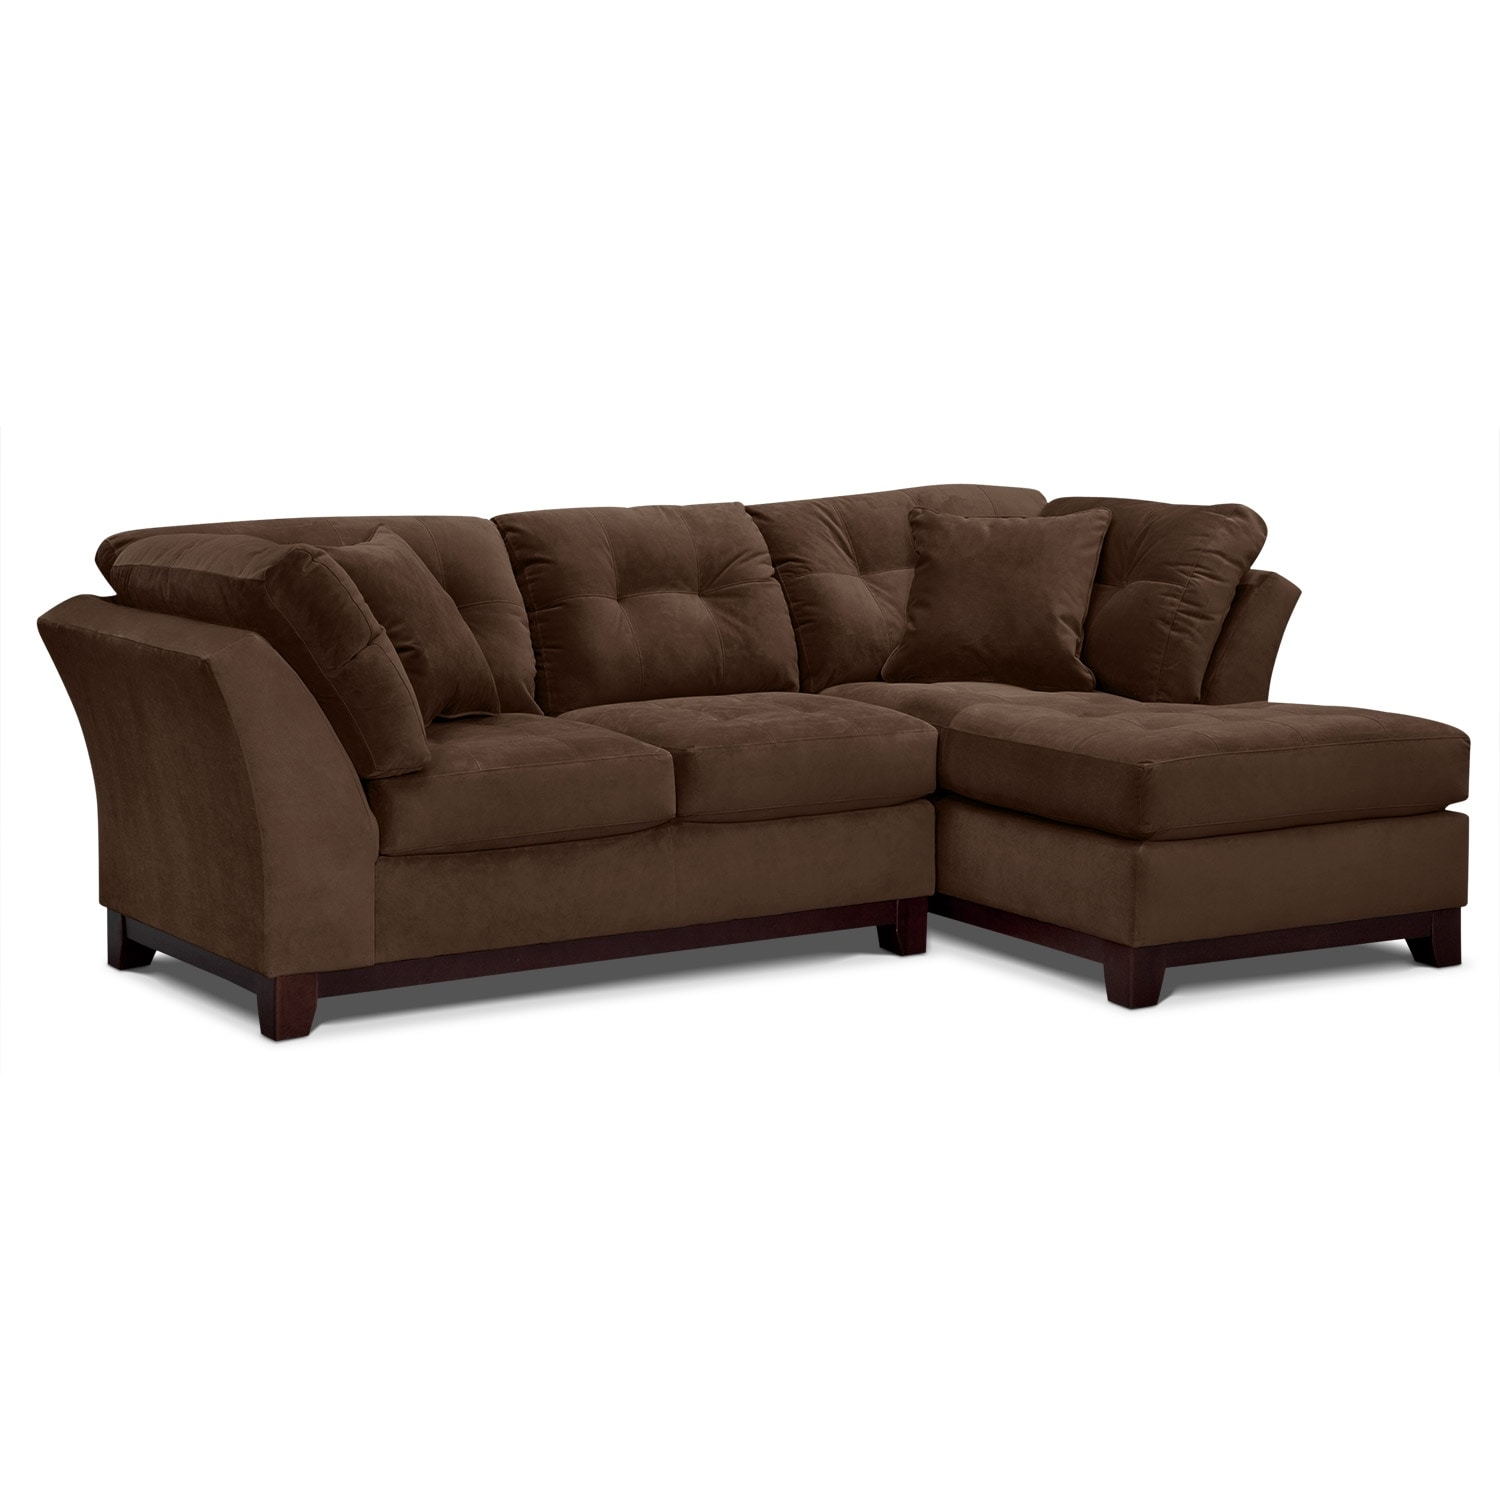 Living Room Furniture - Solace 2-Piece Right-Facing Chaise Sectional - Chocolate